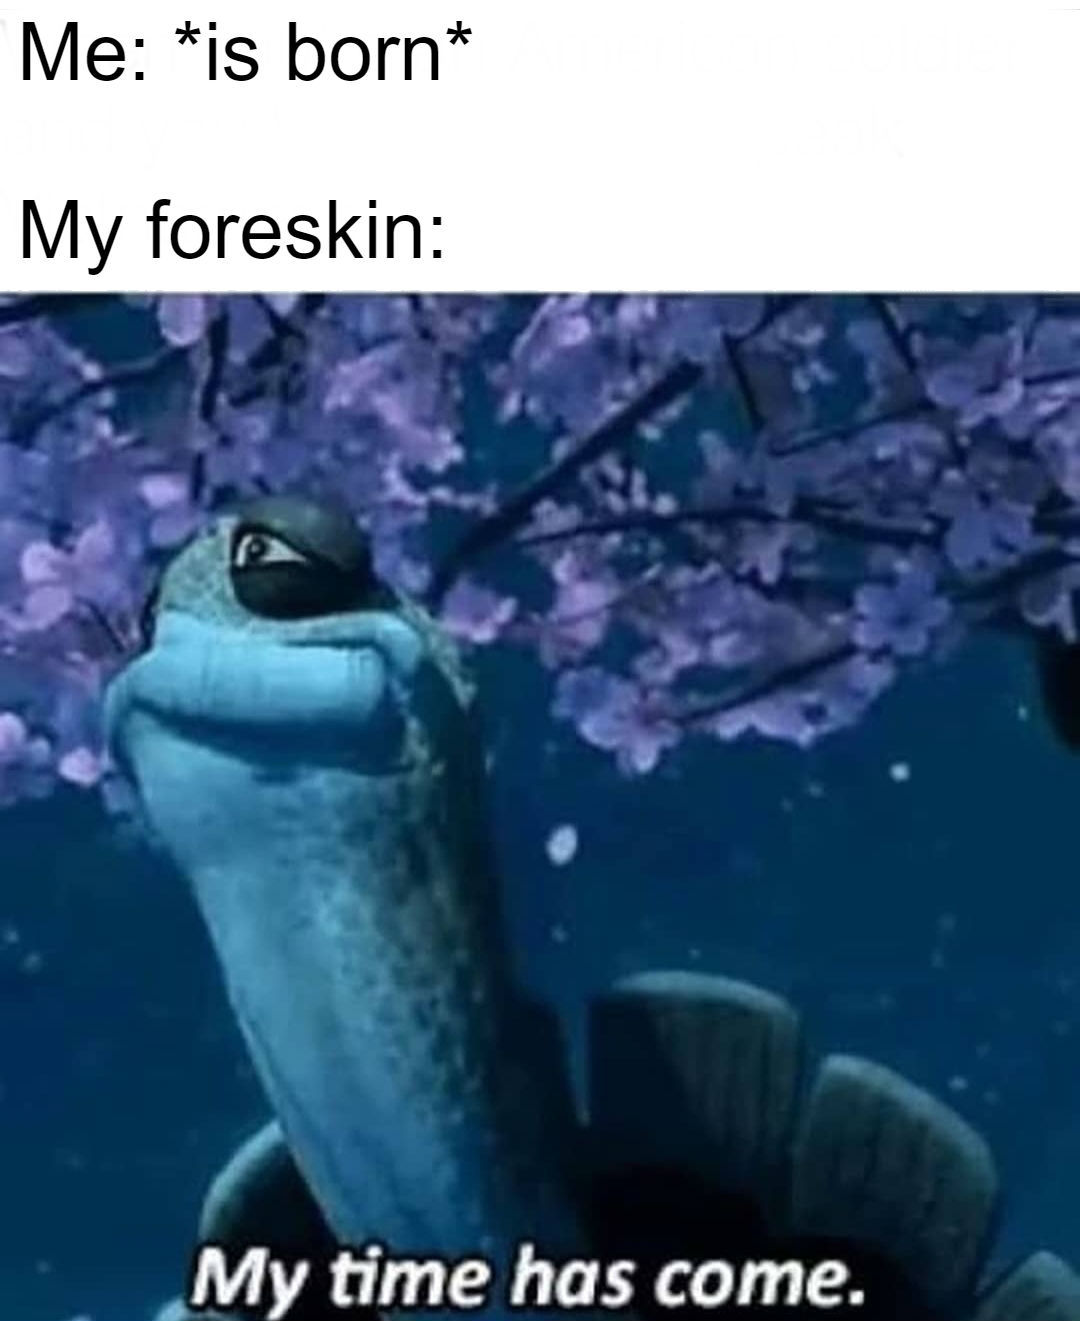 Press F for master Oogway's foreskin - meme